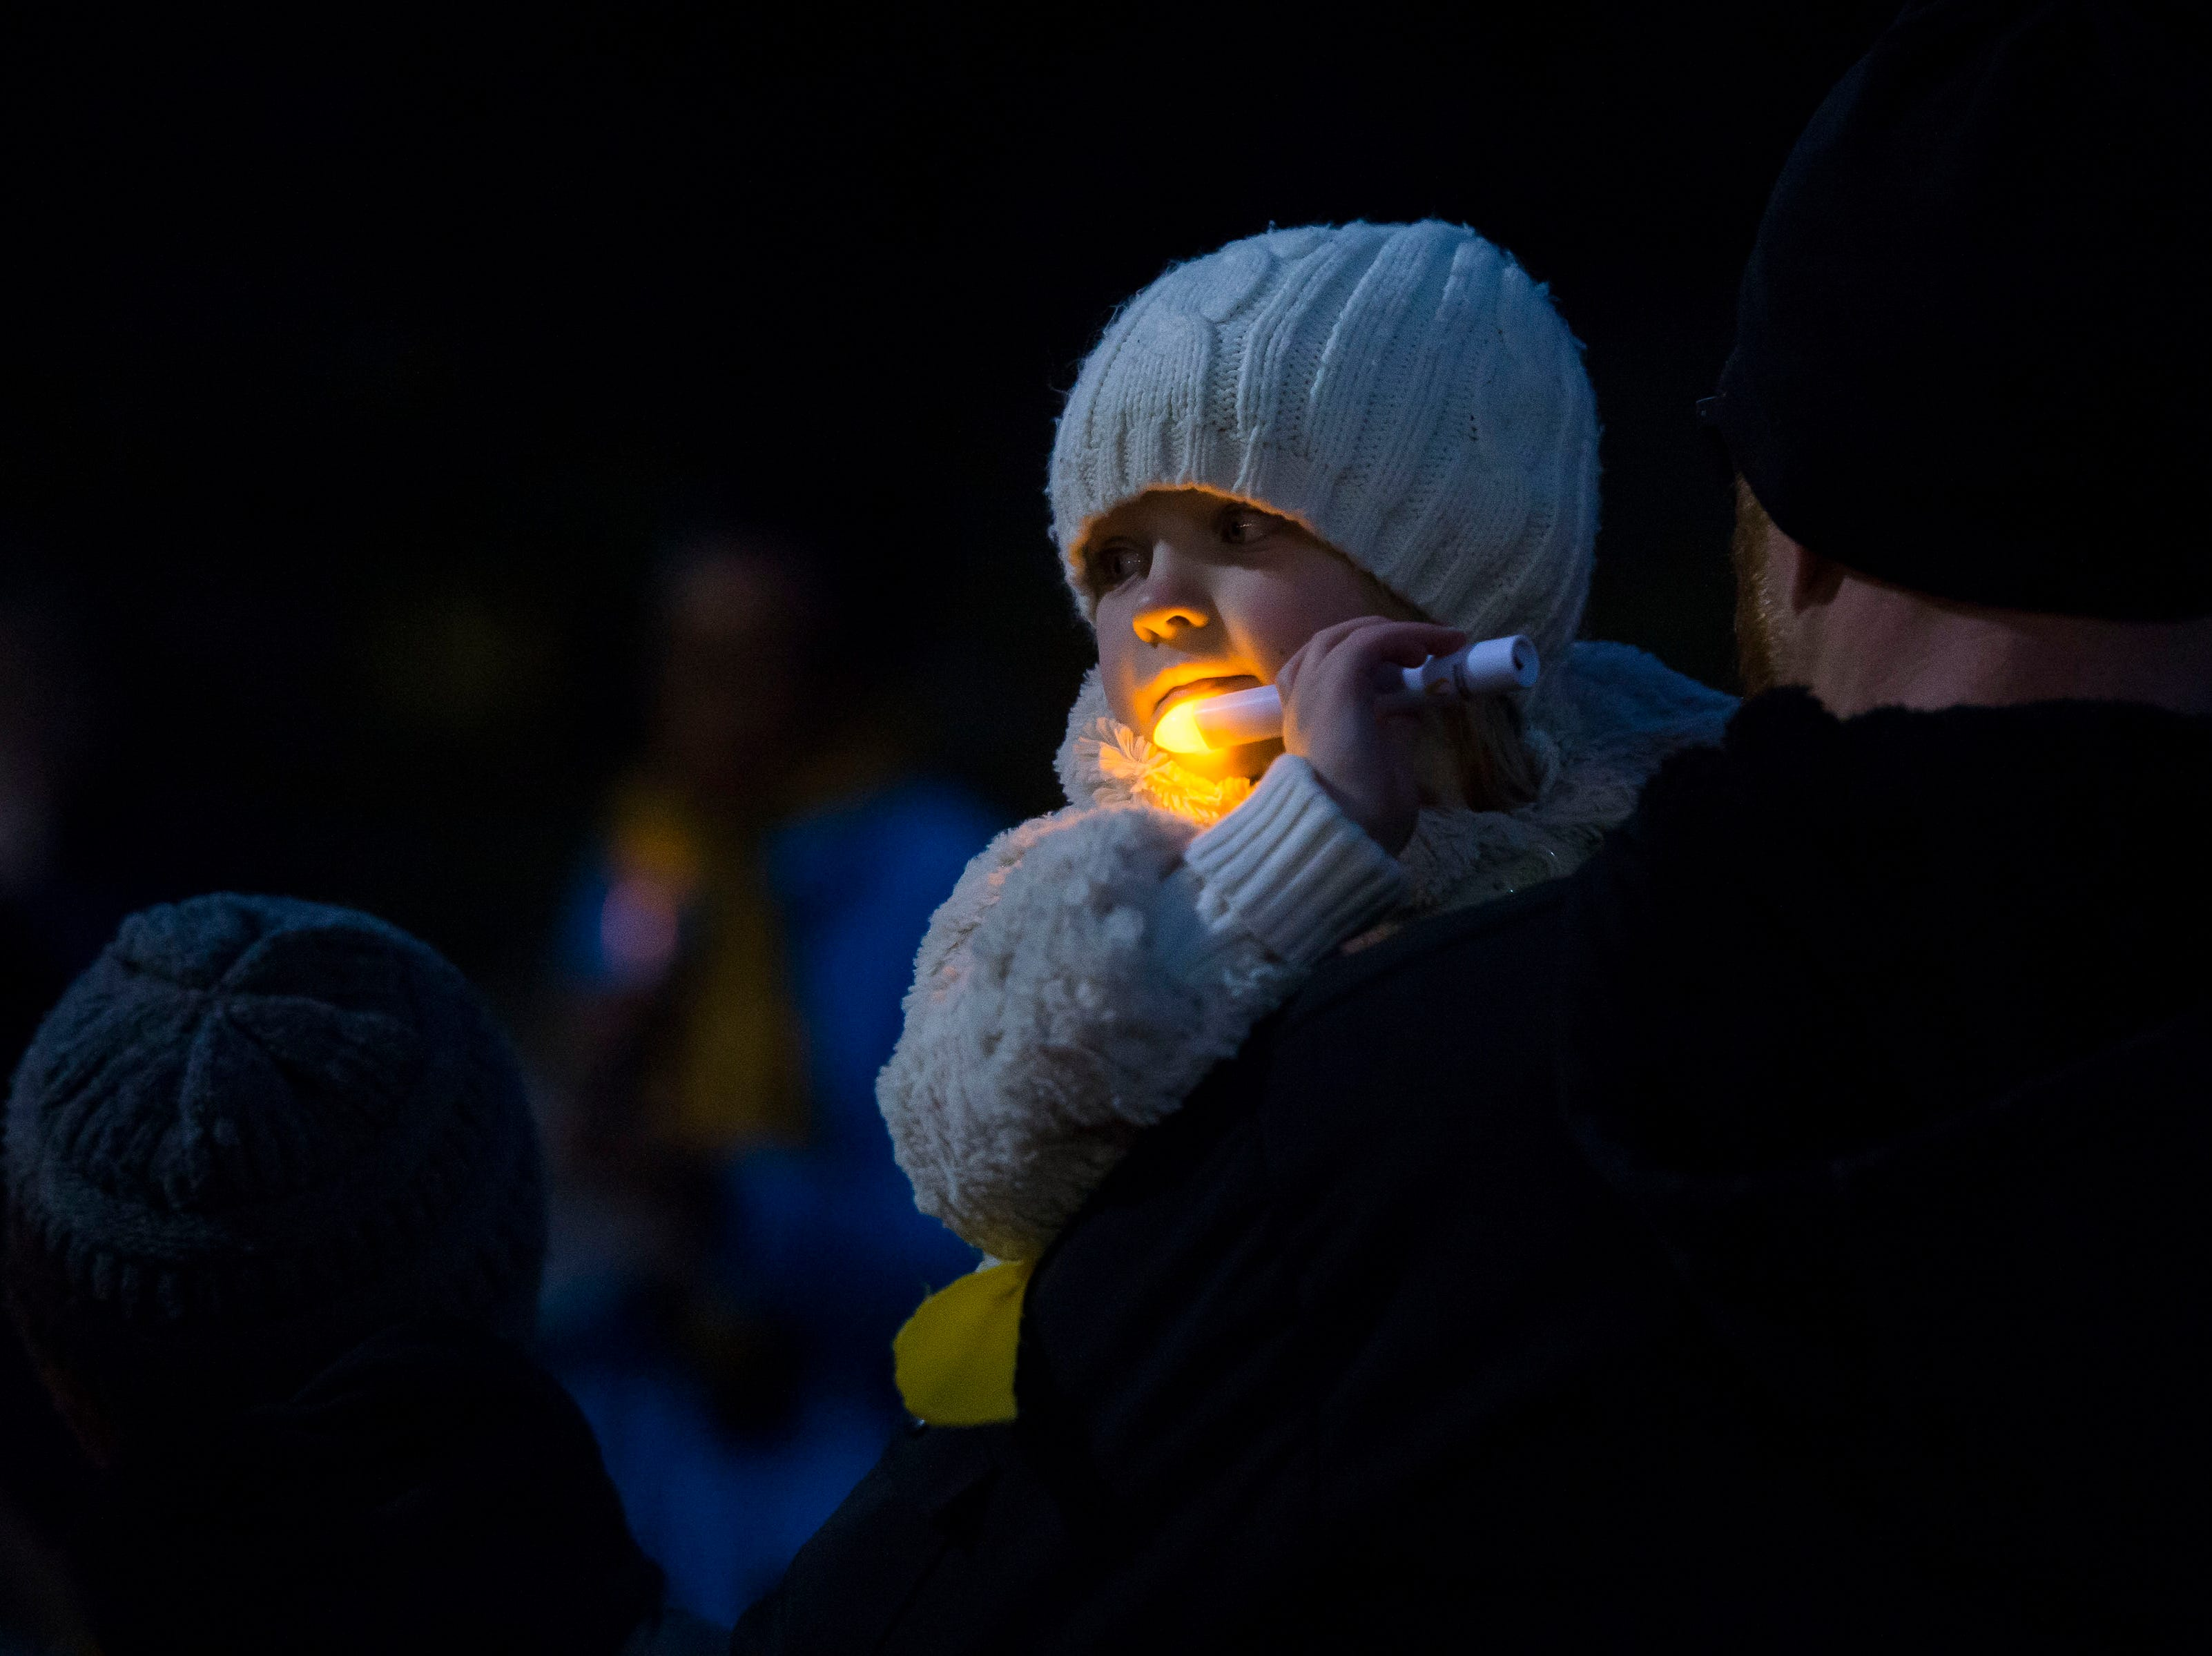 Greta LeFevre, 5, is held by her father Bob during a candlelight vigil on the 20th anniversary of Matthew Shepard's death on Friday, Oct. 12, 2018, at Prexy's Pasture on the University of Wyoming campus in Laramie, Wyo.